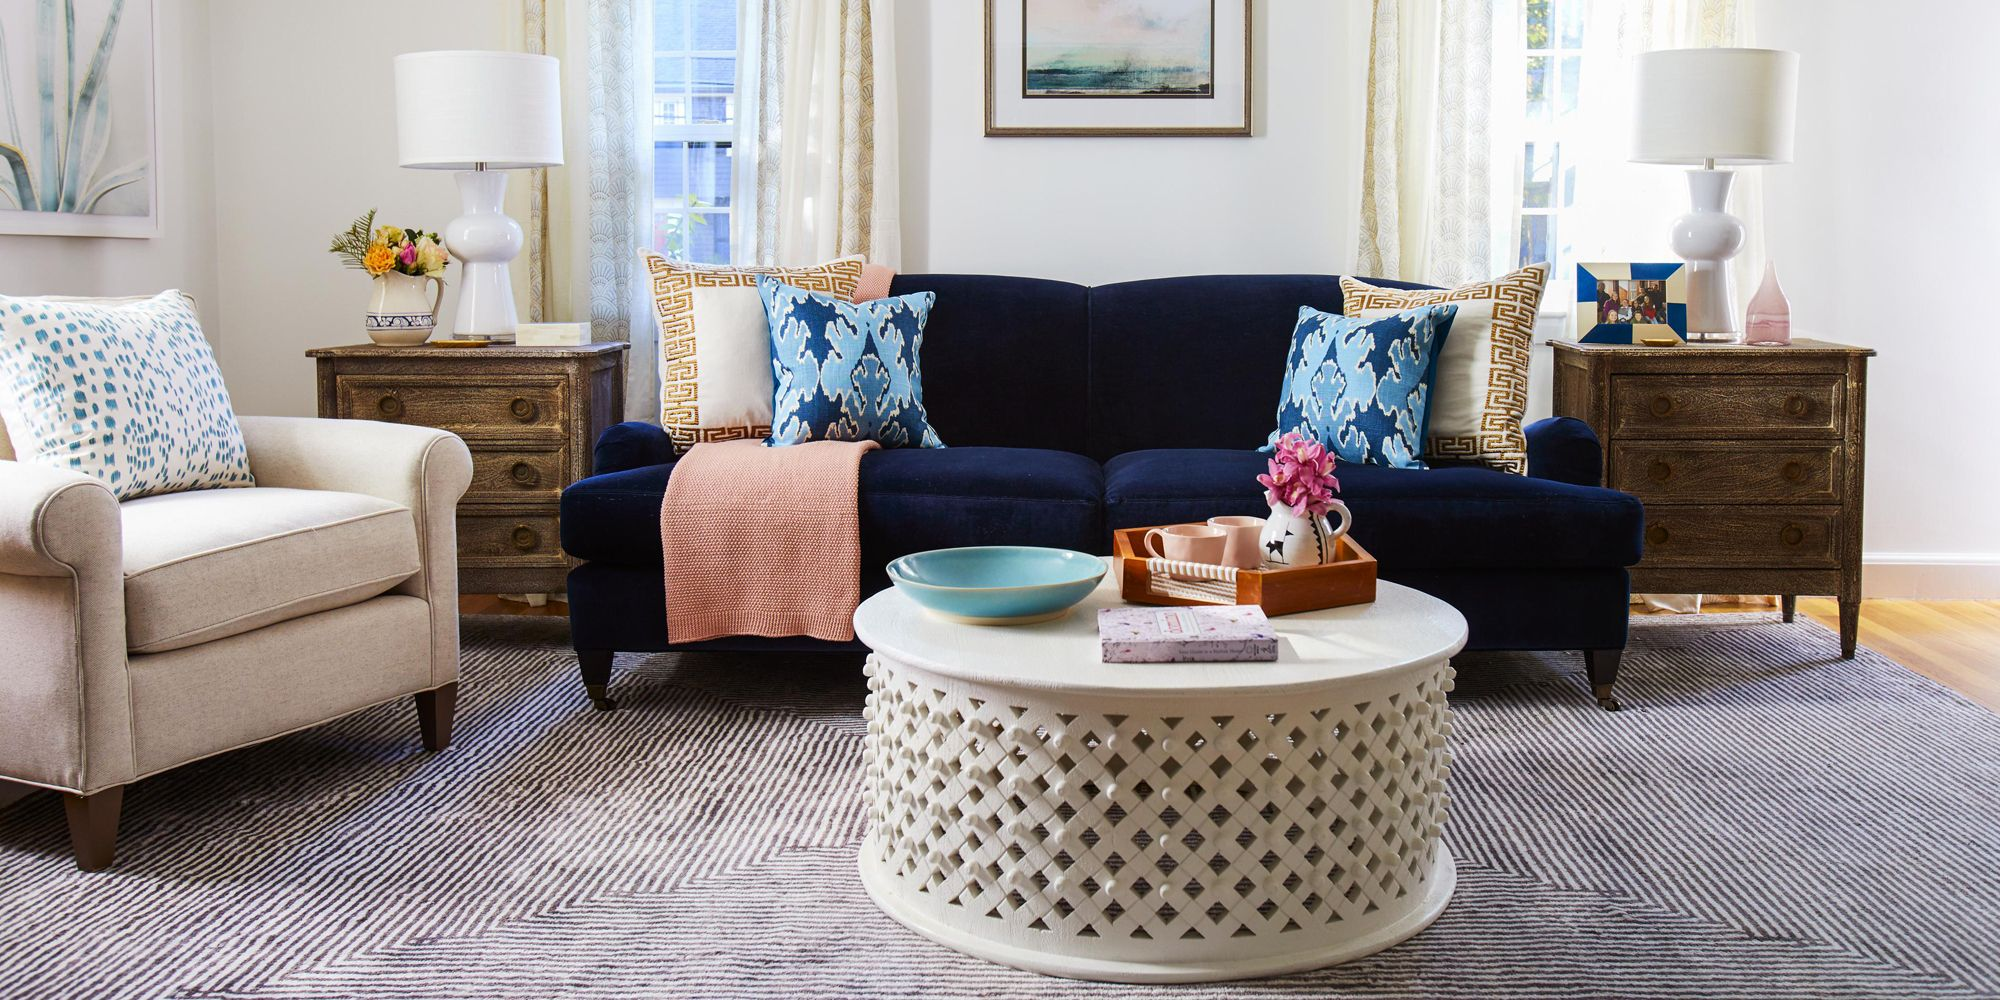 How to Declutter a Room - Decluttering Your House